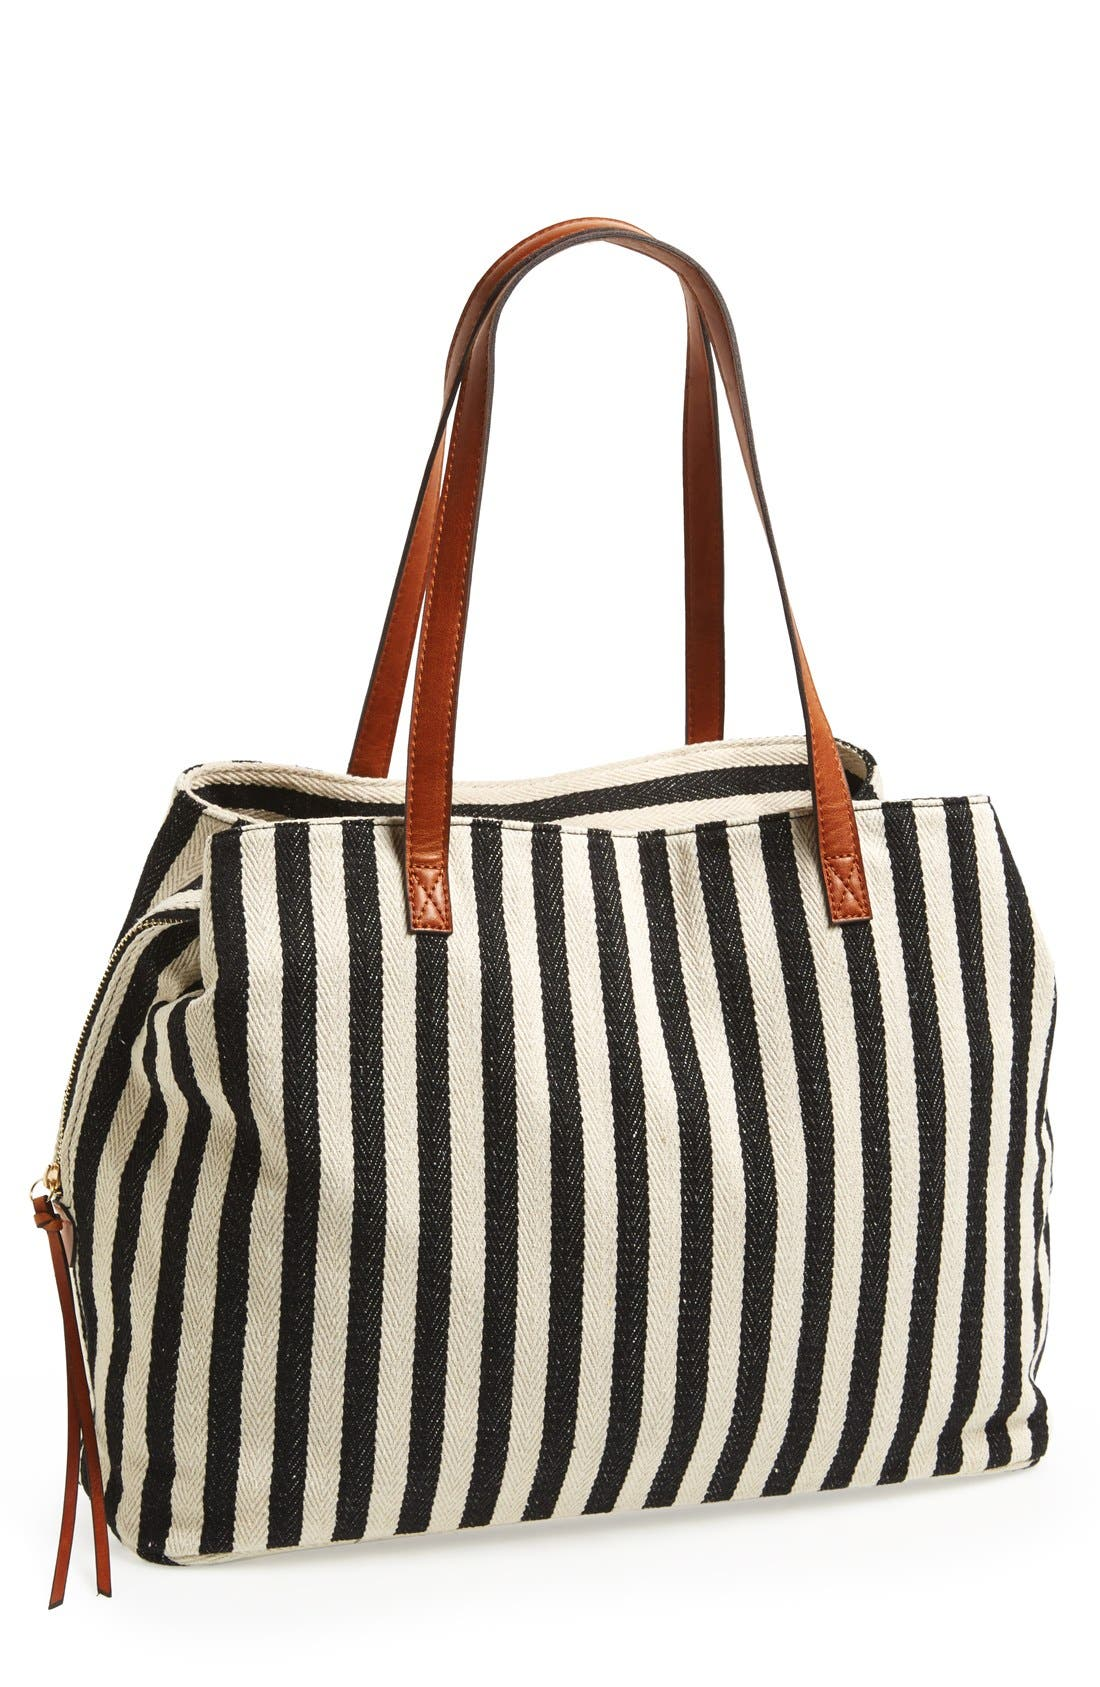 SOLE SOCIETY, Oversize Millie Stripe Print Tote, Main thumbnail 1, color, BLACK WHITE STRIPE